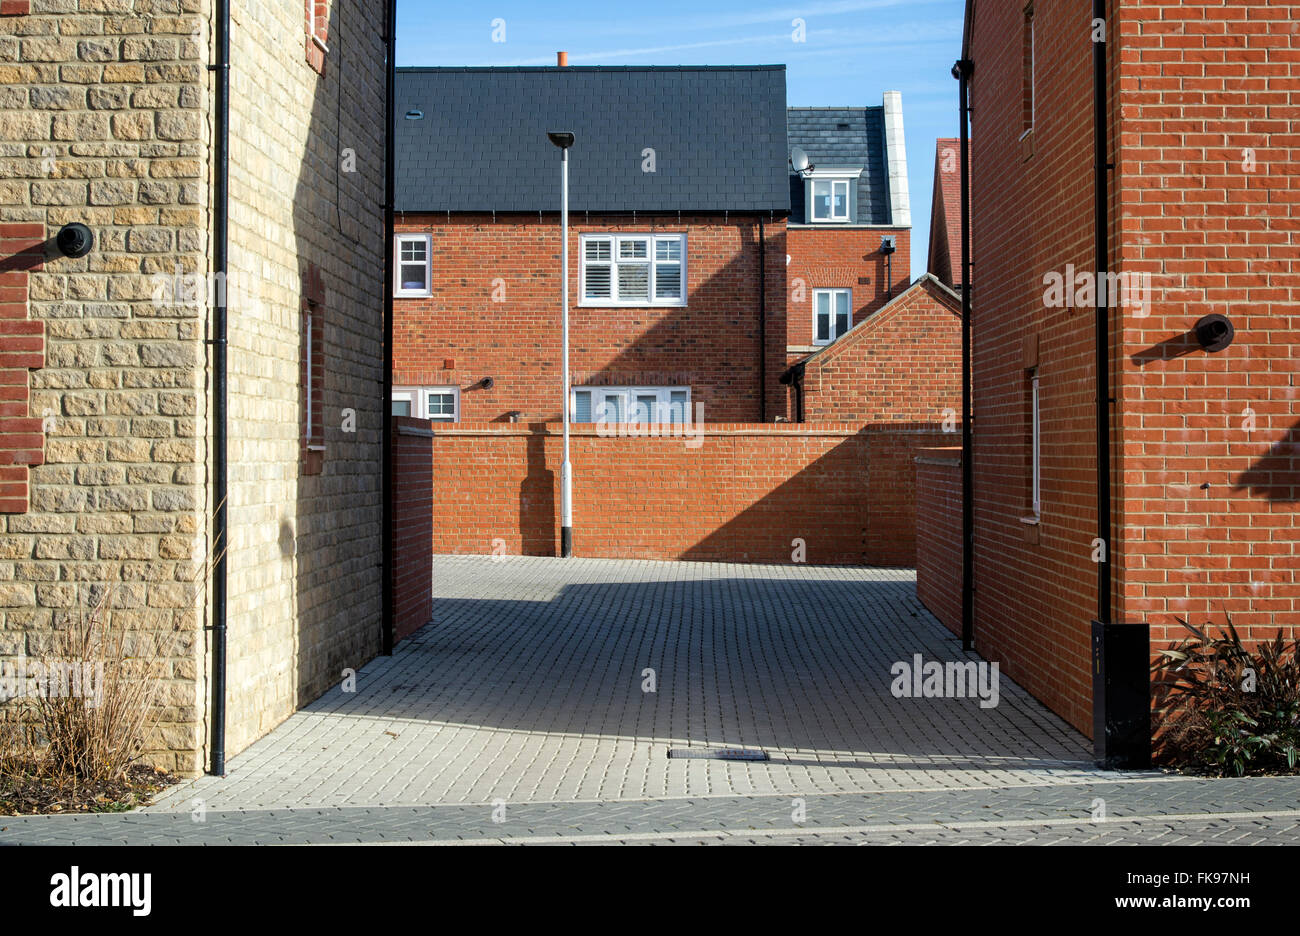 New house buildings. Bicester, Oxfordshire, England - Stock Image